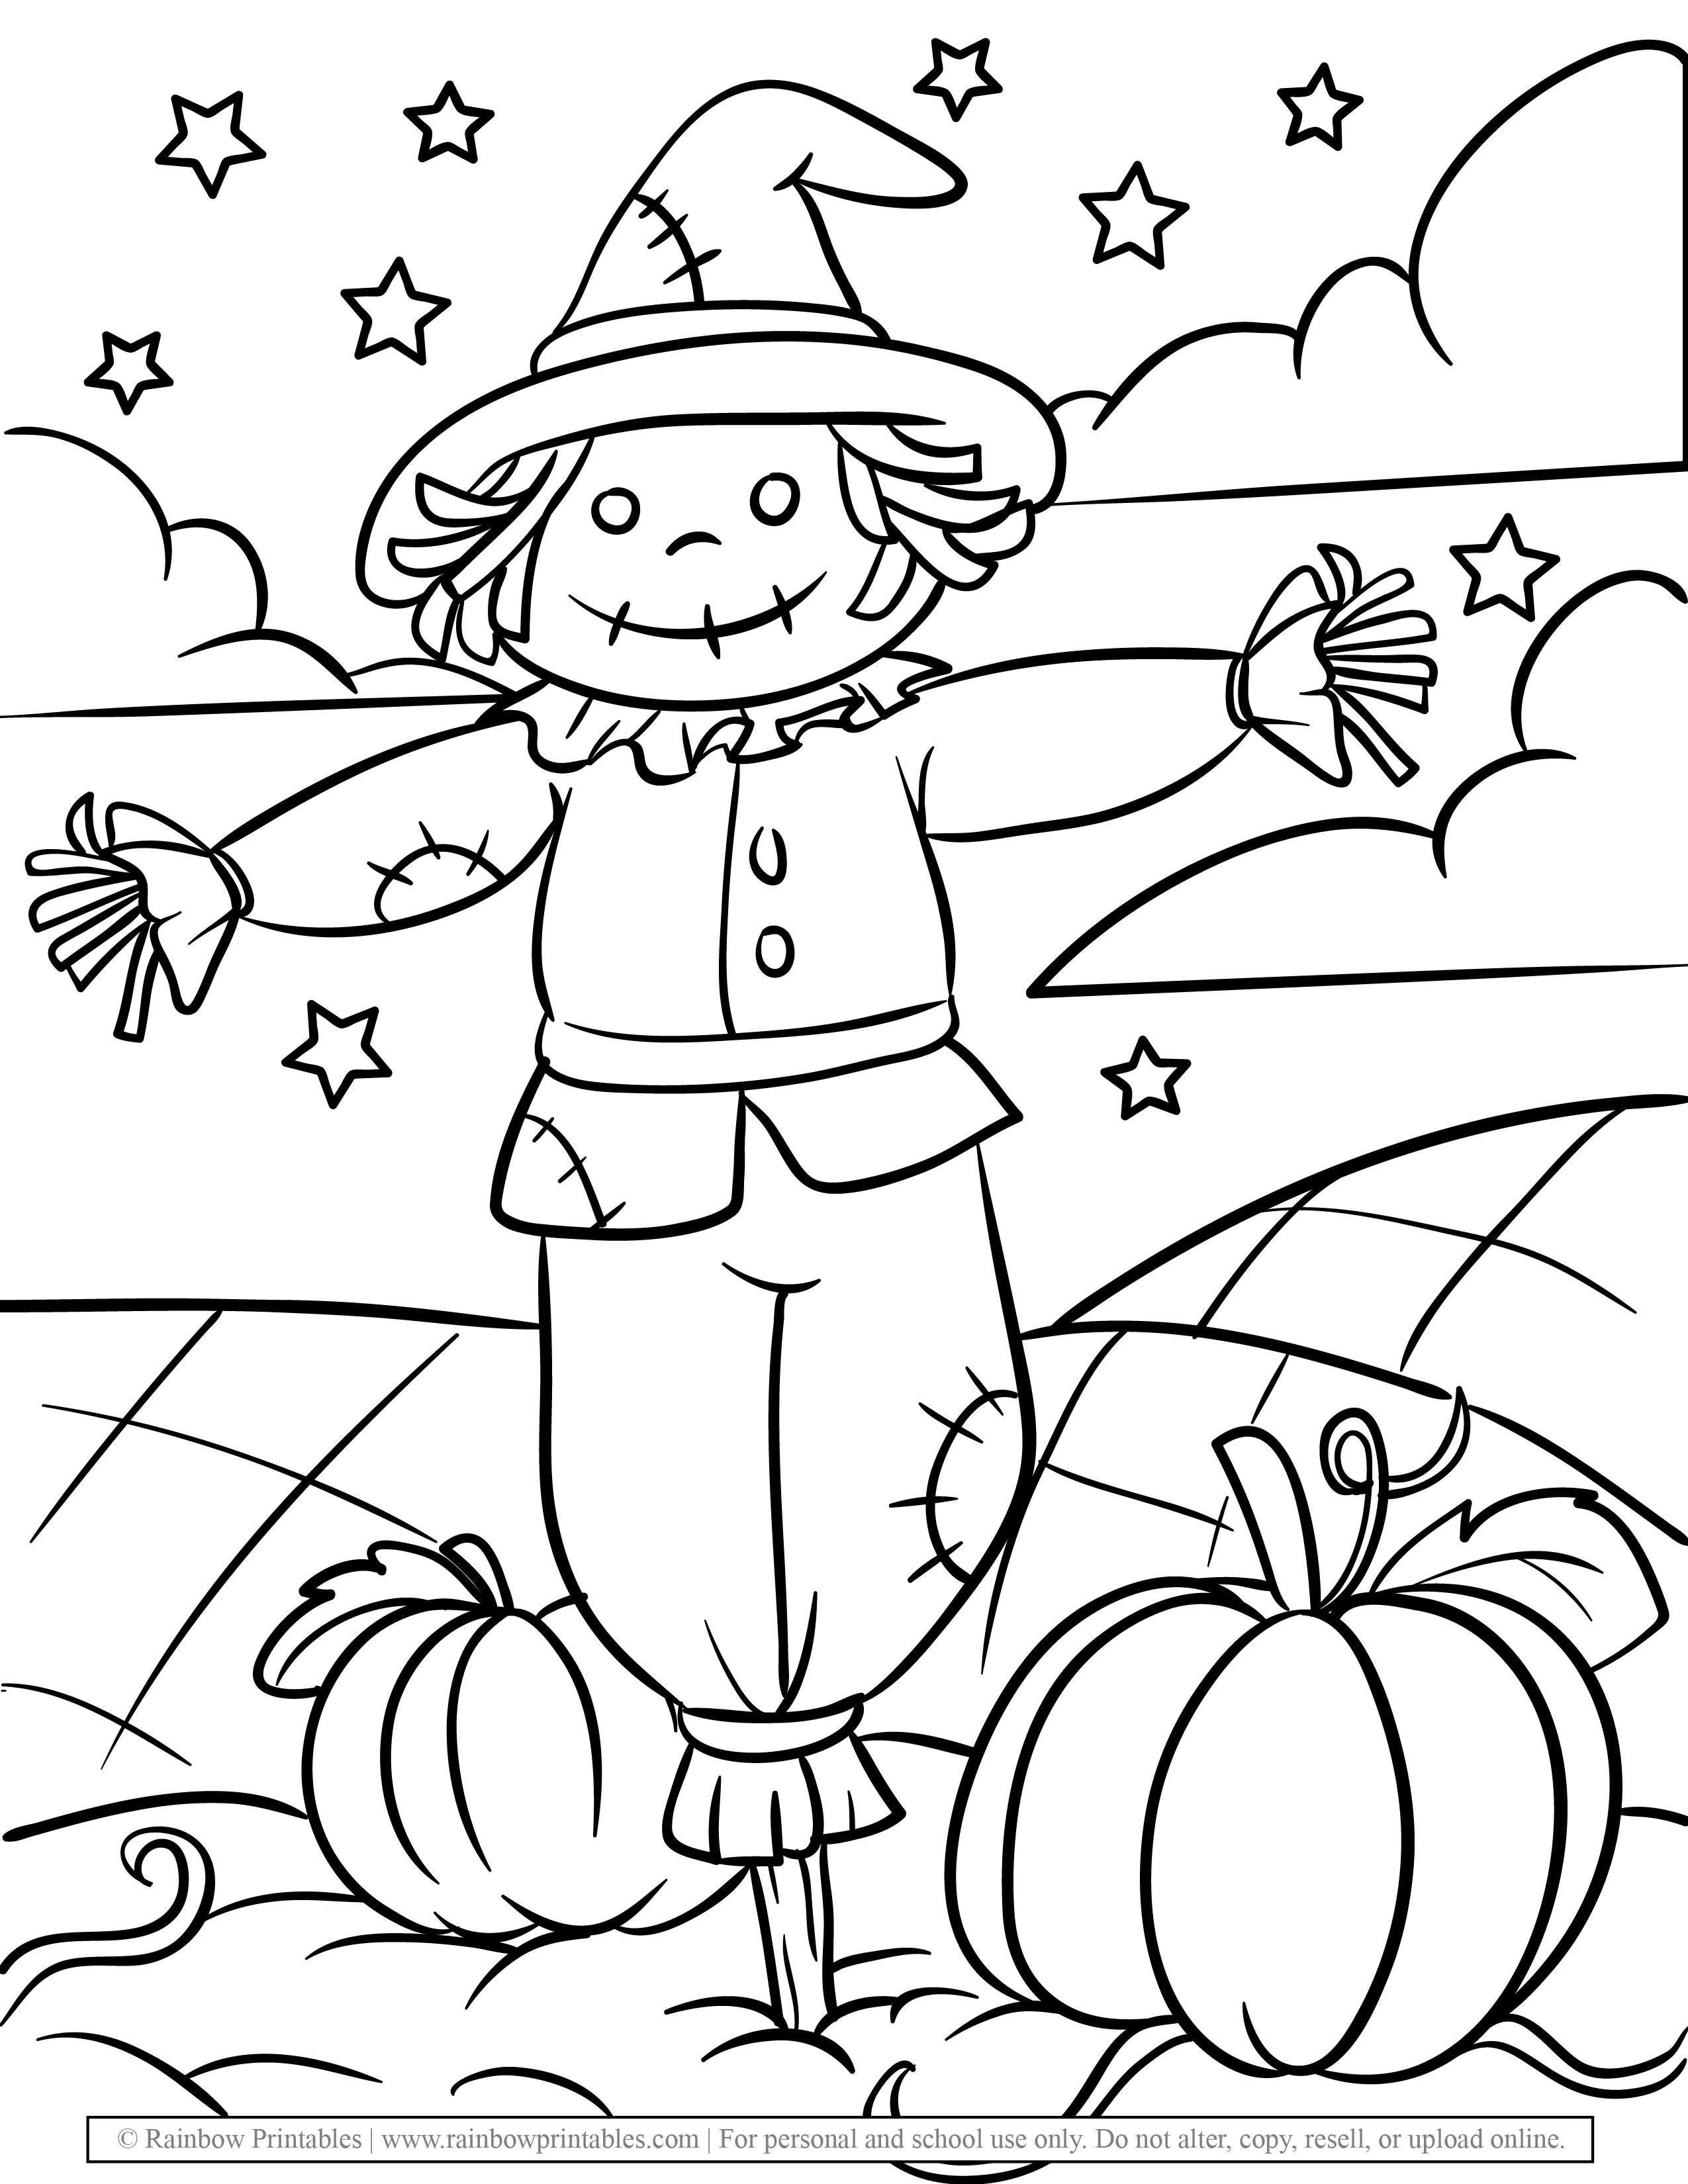 CUTE Scarecrow Boy Straw Stick in Field Pumpkin on Starry Night Patches